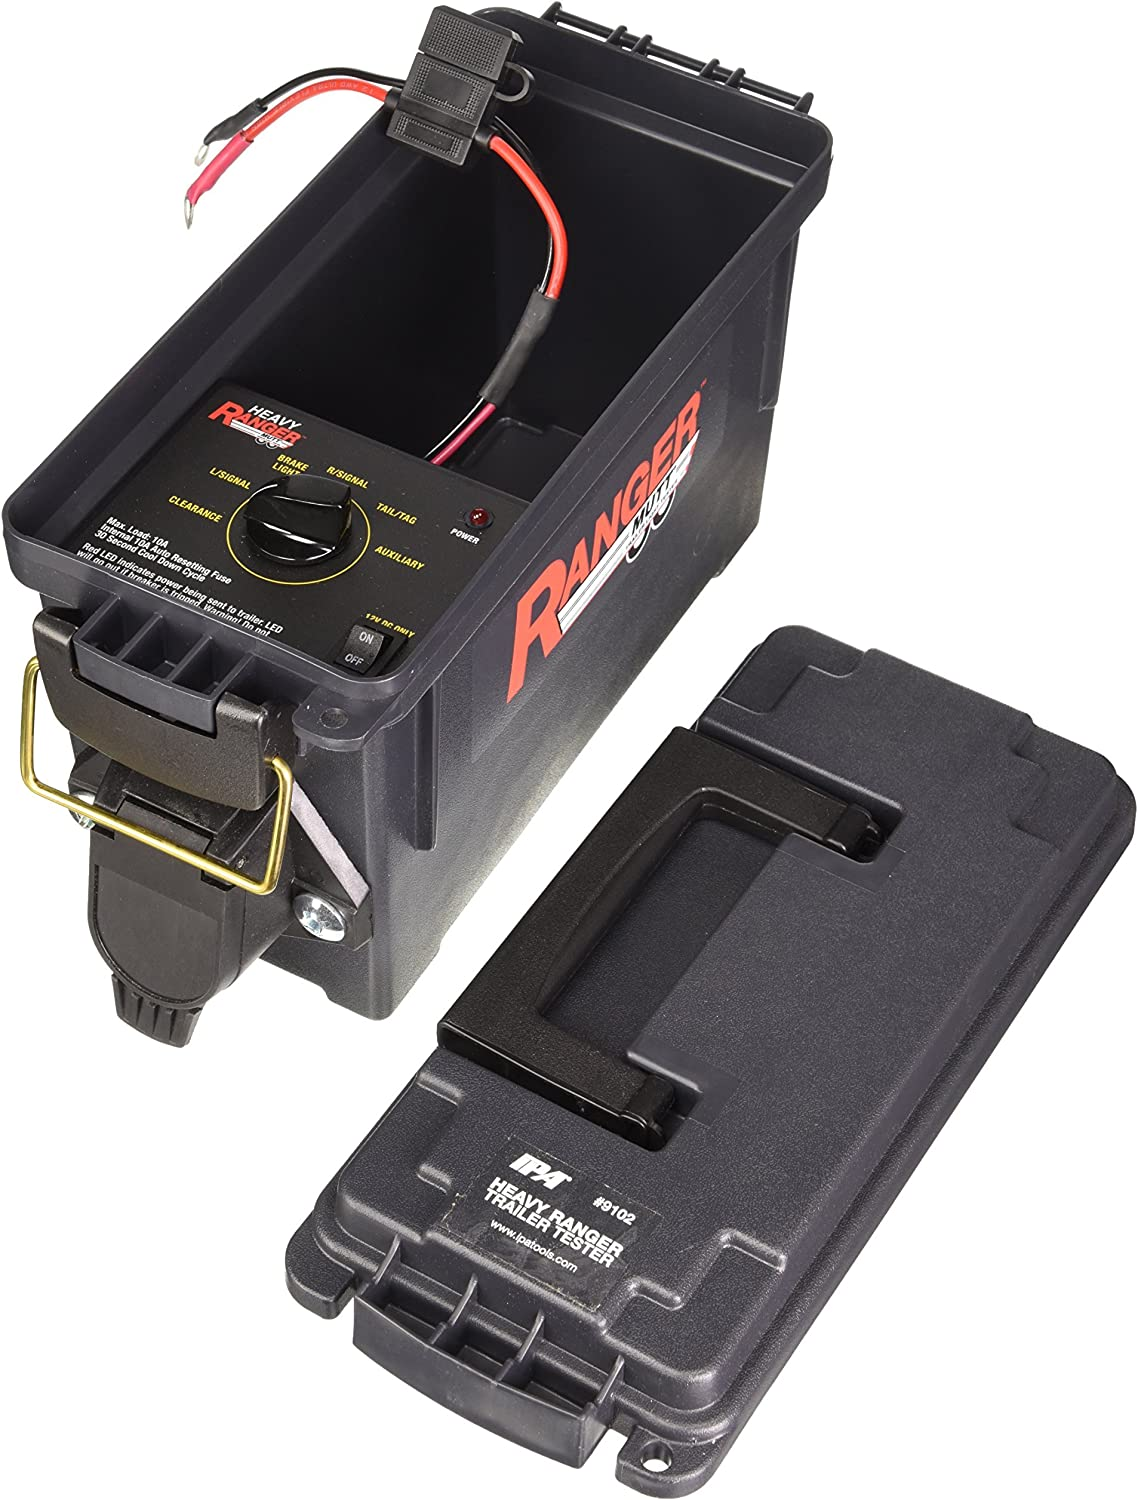 Innovative Products Of America 9102 Trailer Light Tester